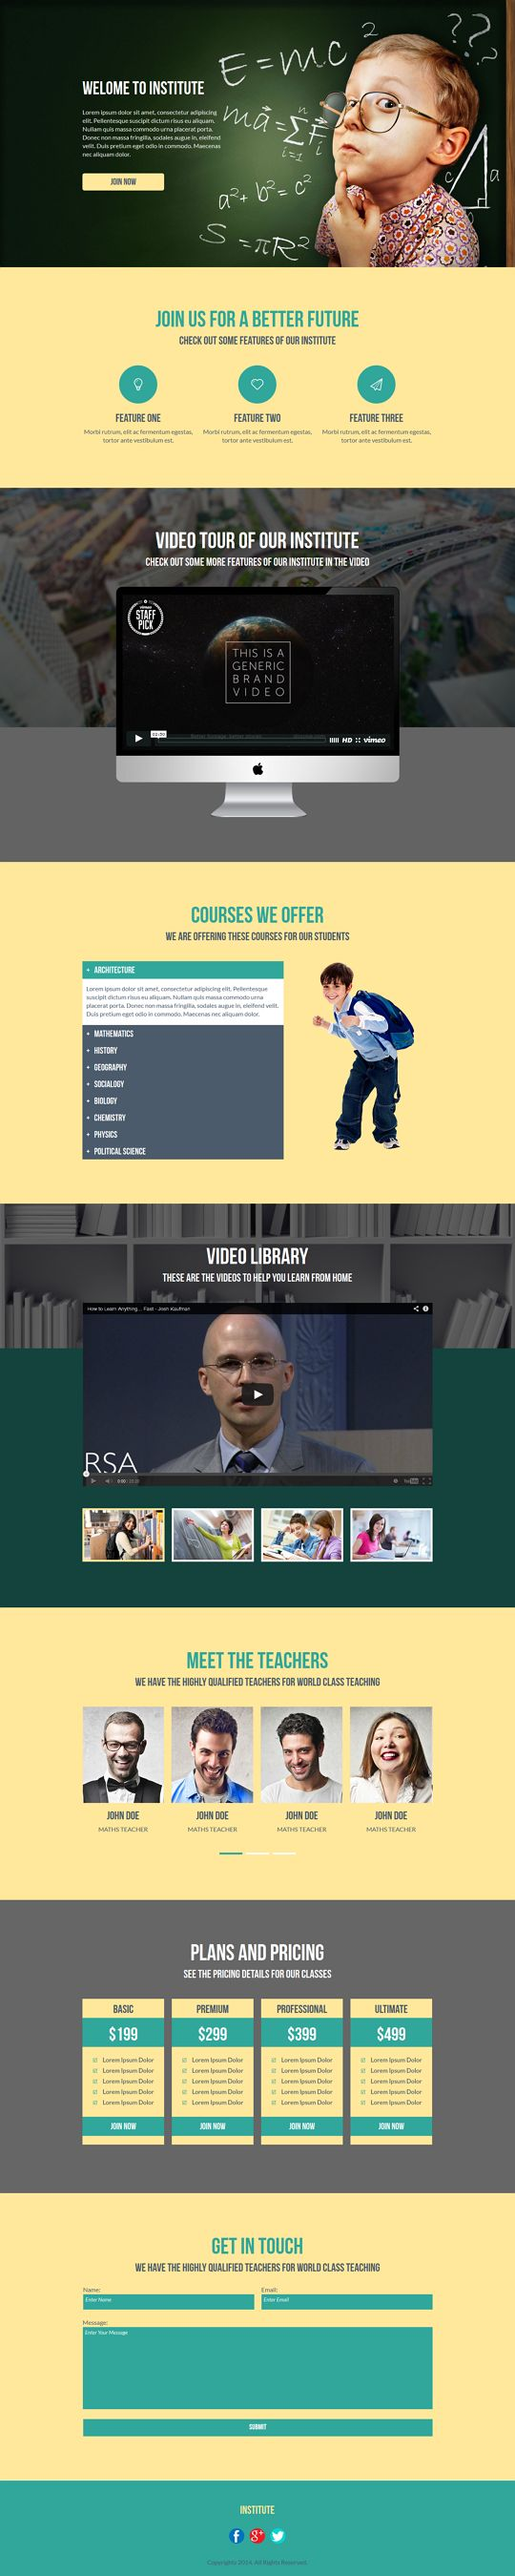 Institute is a muse landing page template. It is designed specially for education website templates. This template has some of the greatest features which makes it most wanted #muse #template for #education #websites.